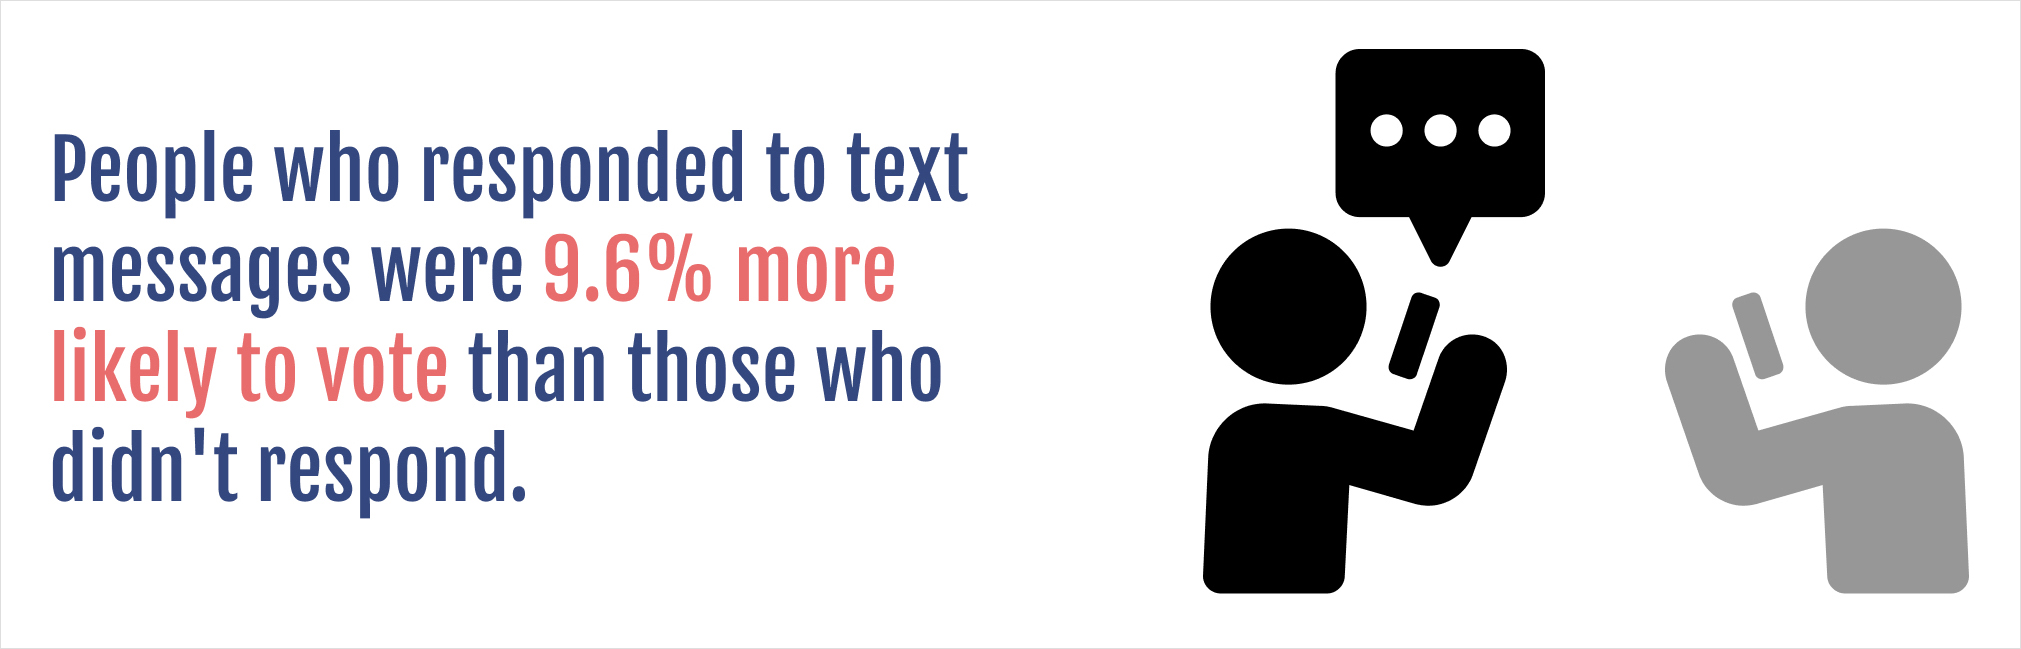 People who responded to text messages were 9.6% more likely to vote than those who didn't respond